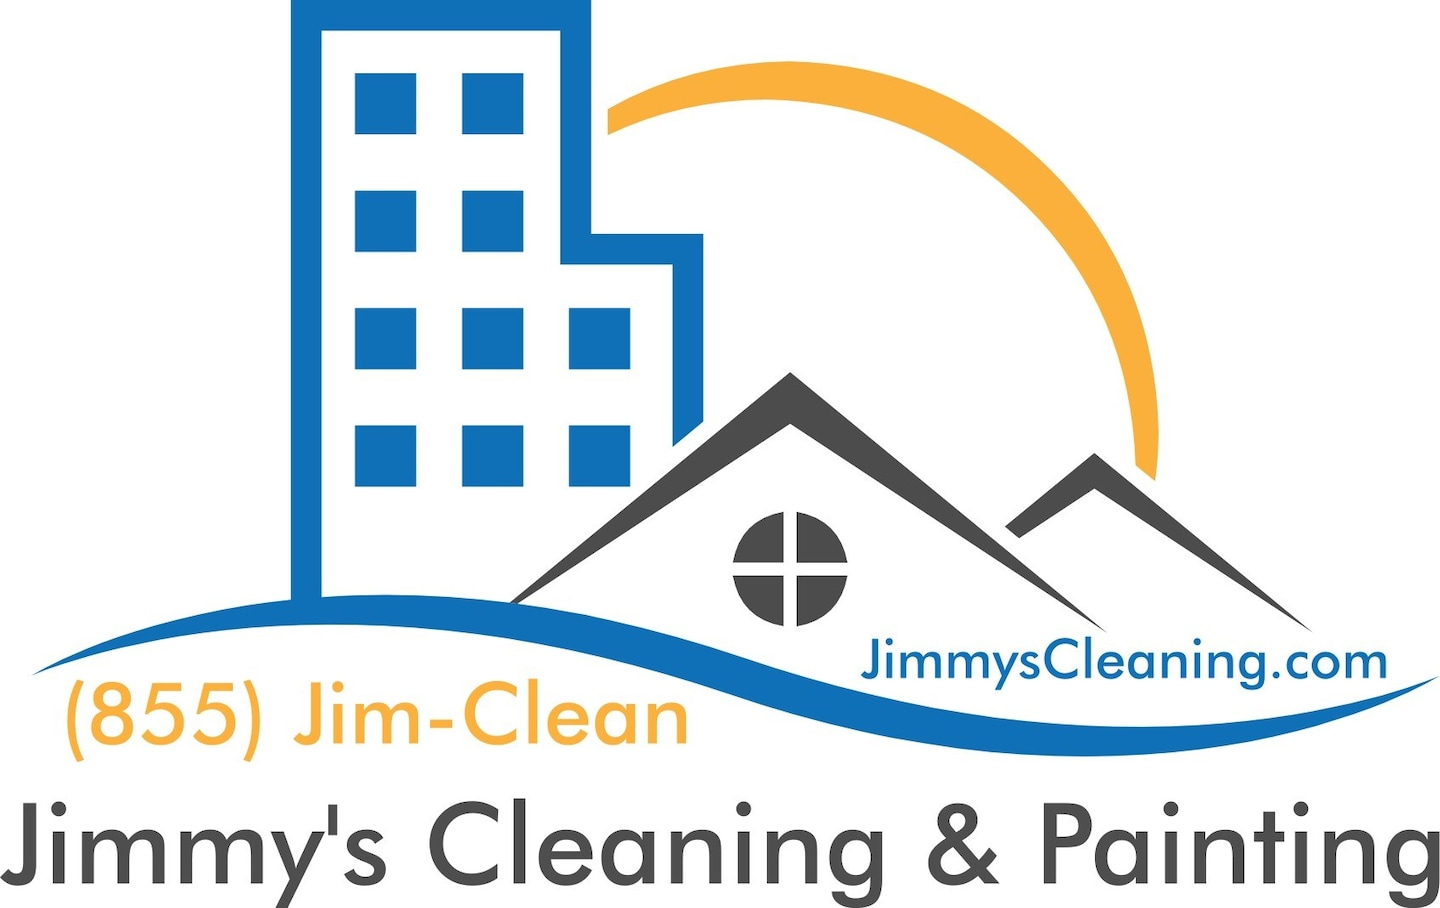 Jimmy's Cleaning and Painting